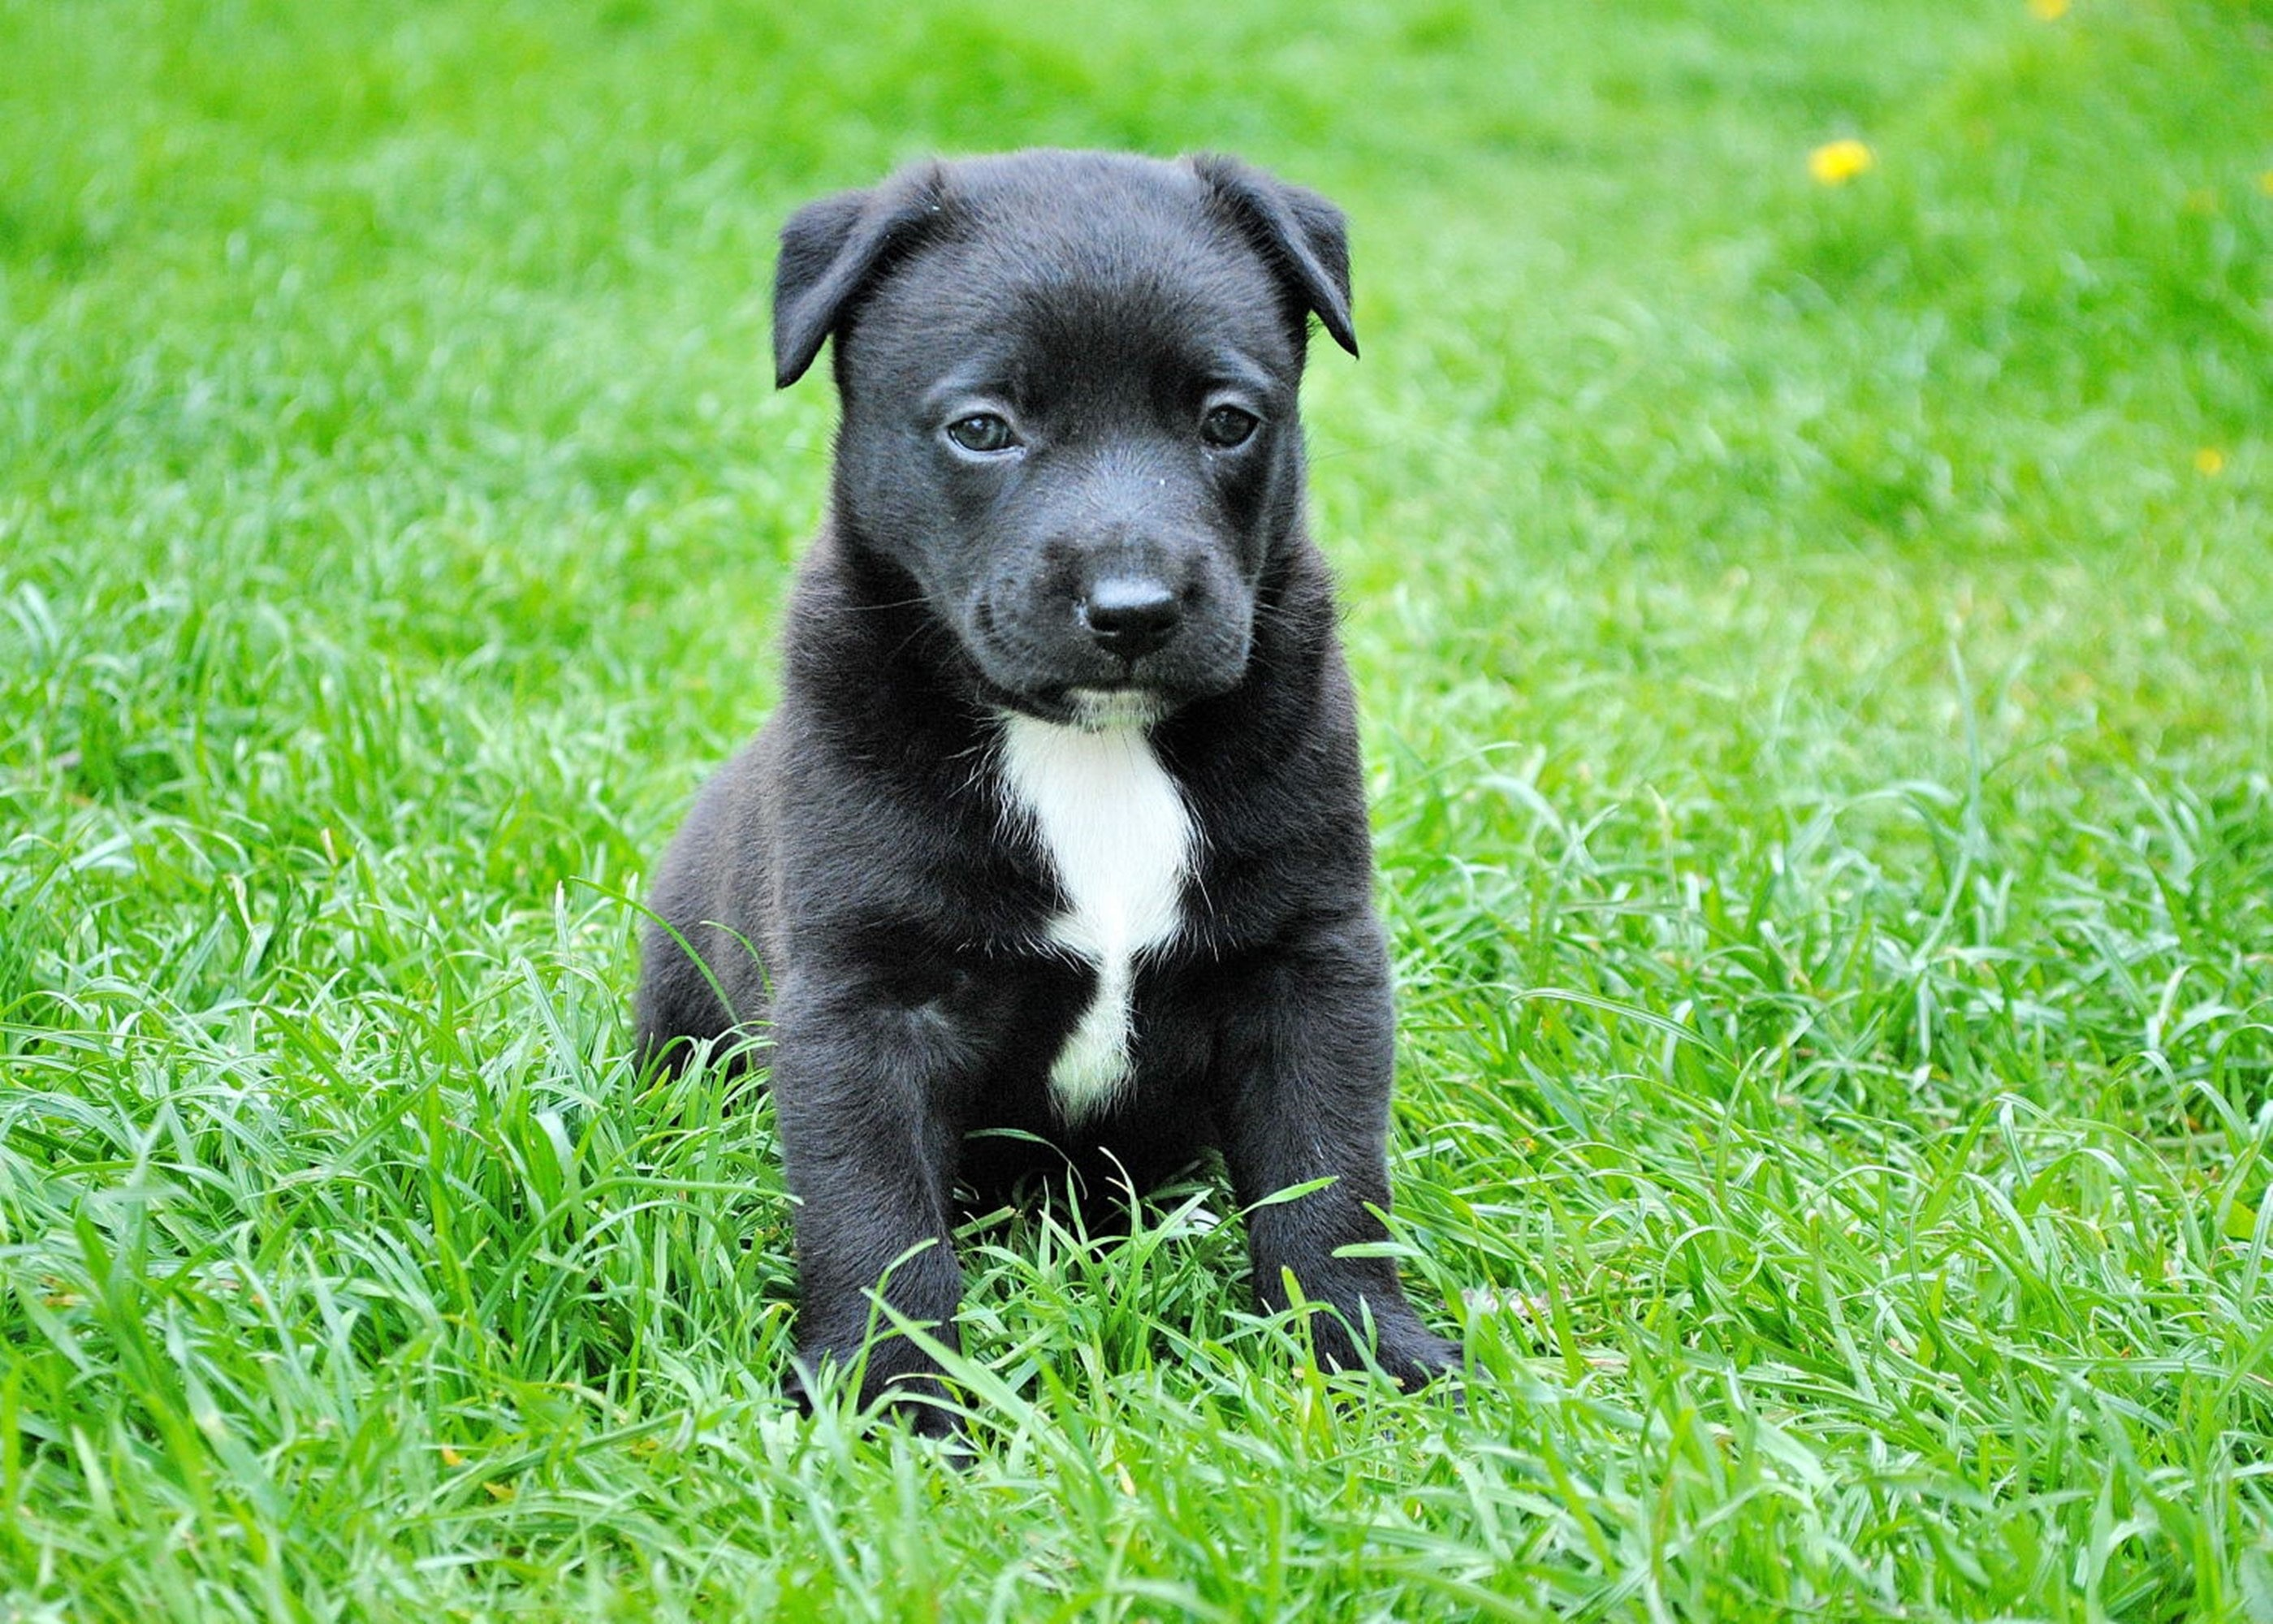 Black and White Short Coated Puppy Sitting on Green Grass, Pet, Puppy, Grass, Domestic animal, HQ Photo